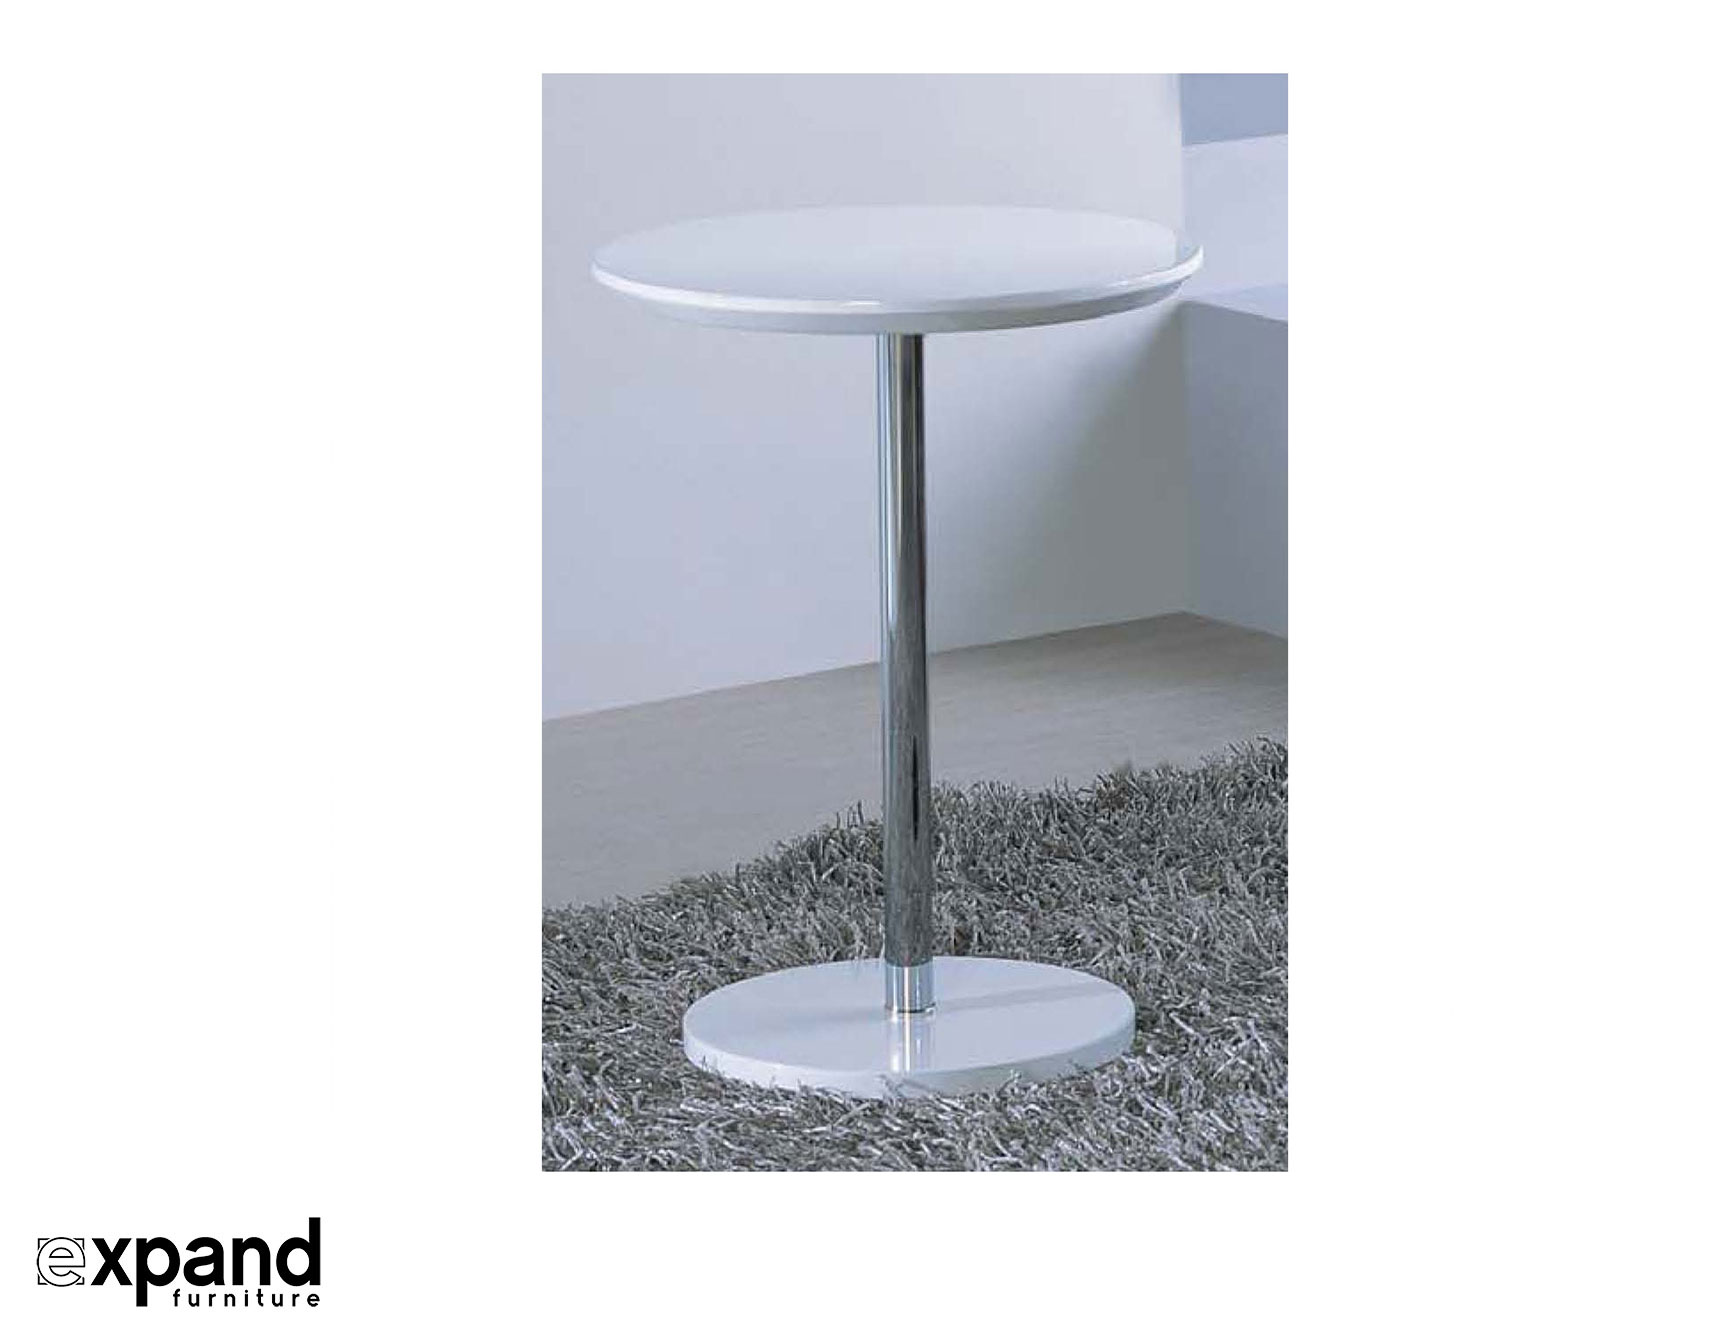 Minima Small Round Table Expand Furniture Folding Tables